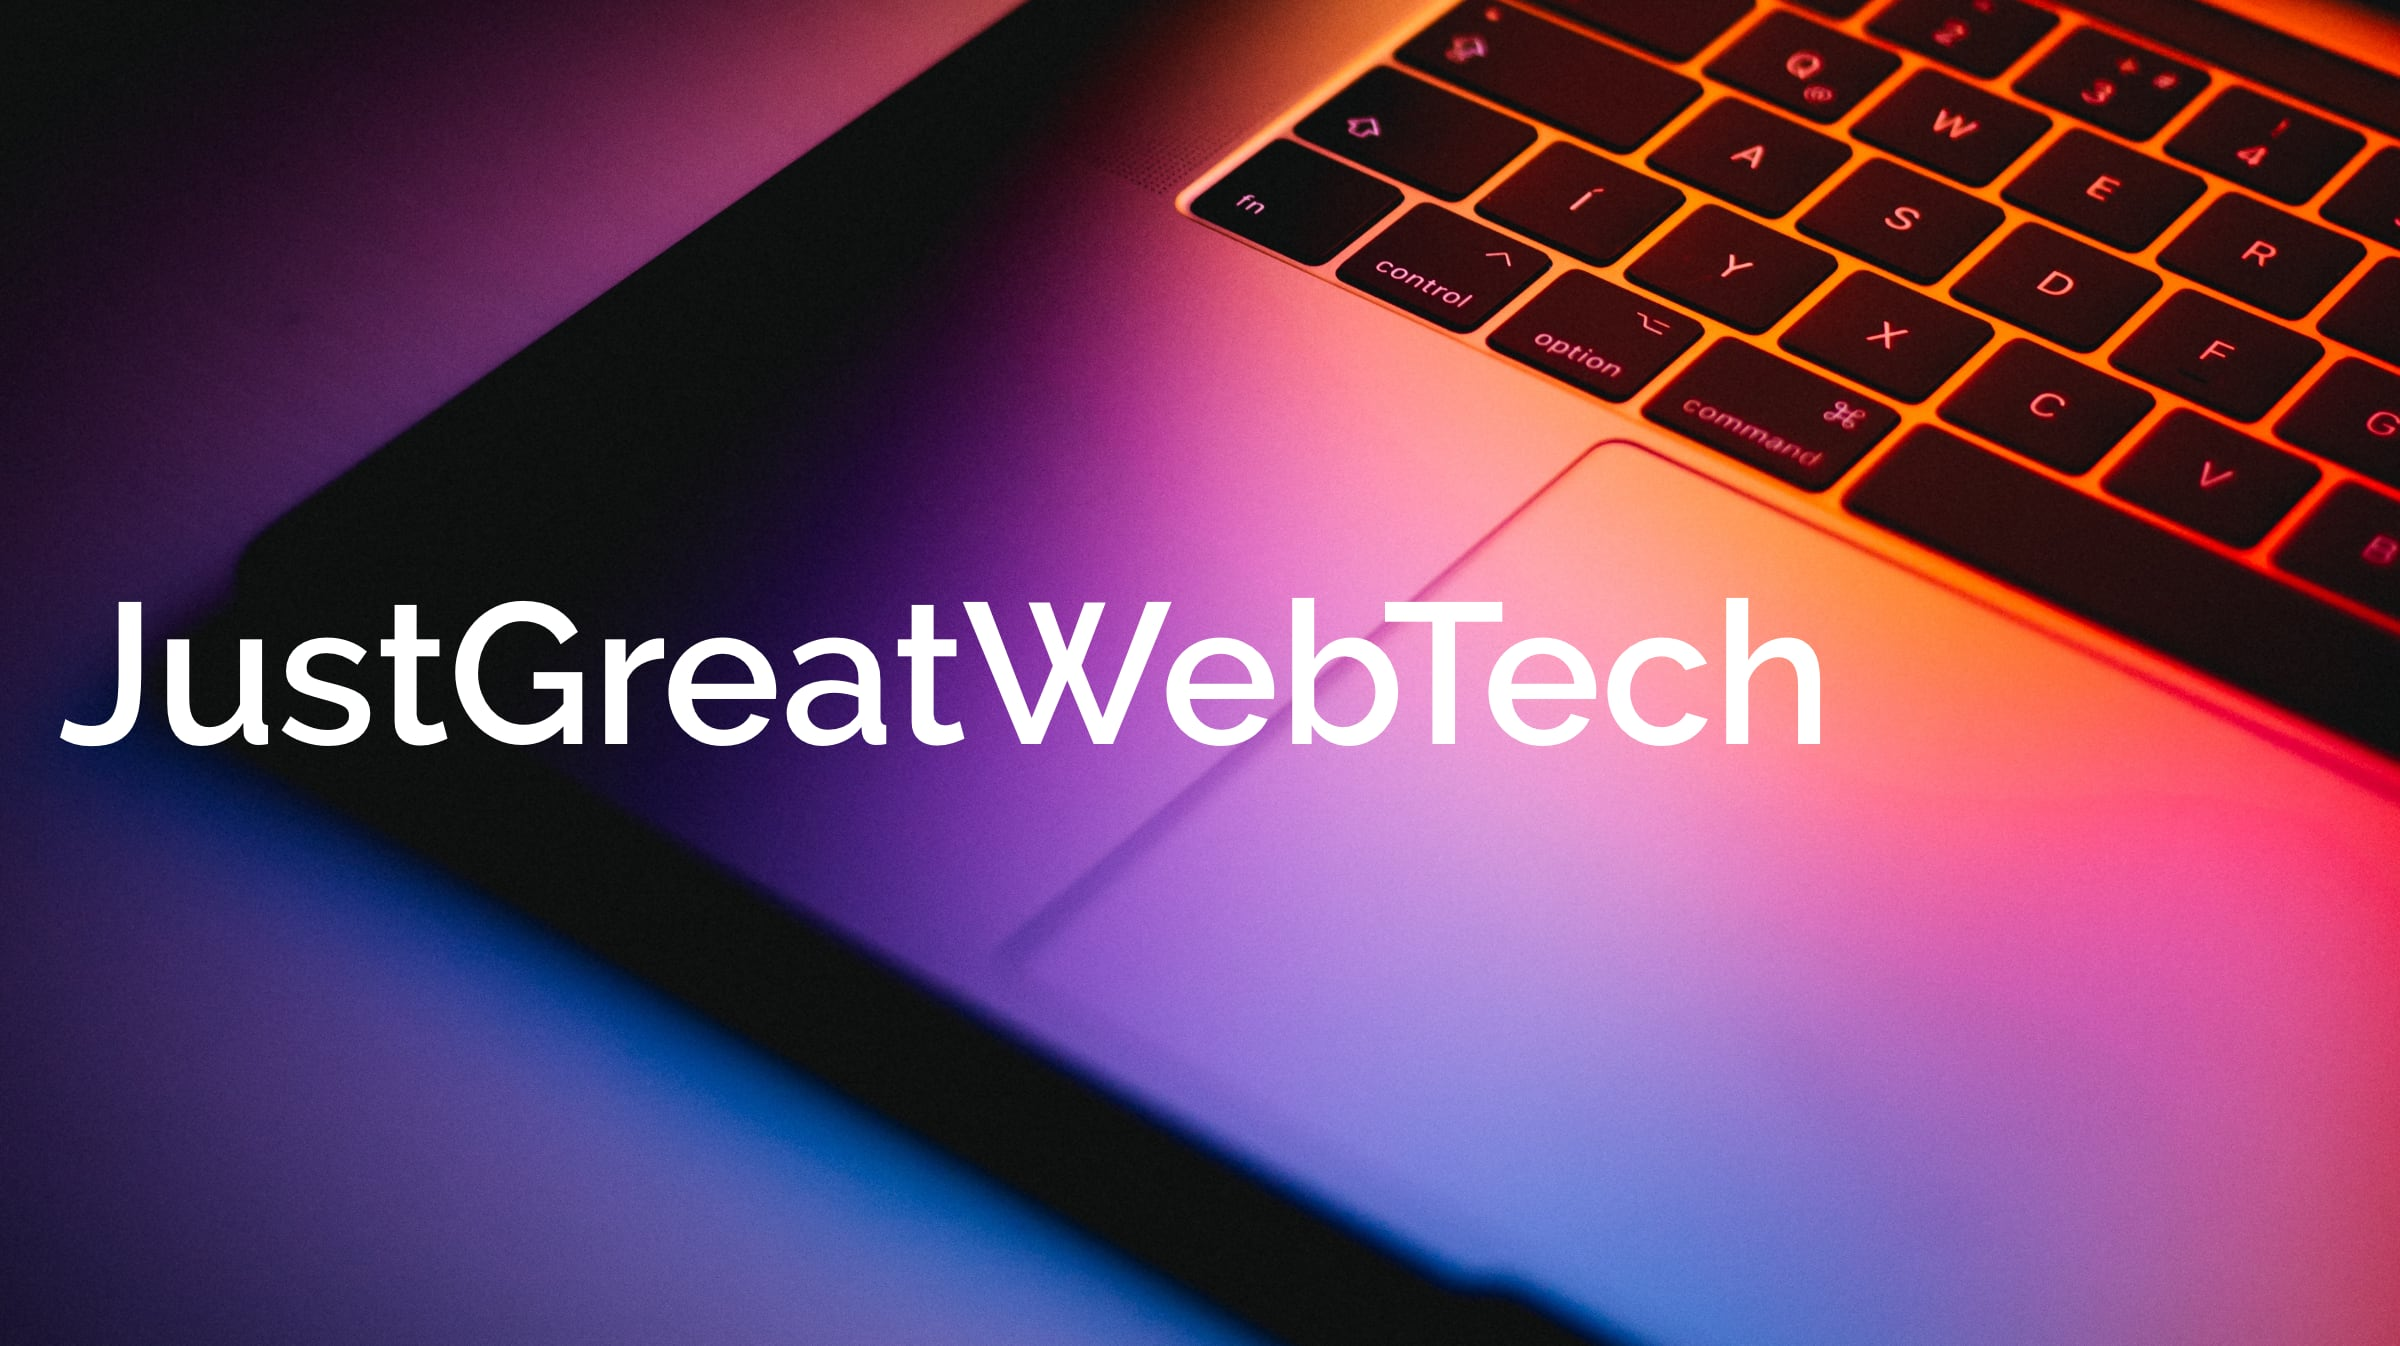 JustGreatWebTech Accessibility Services